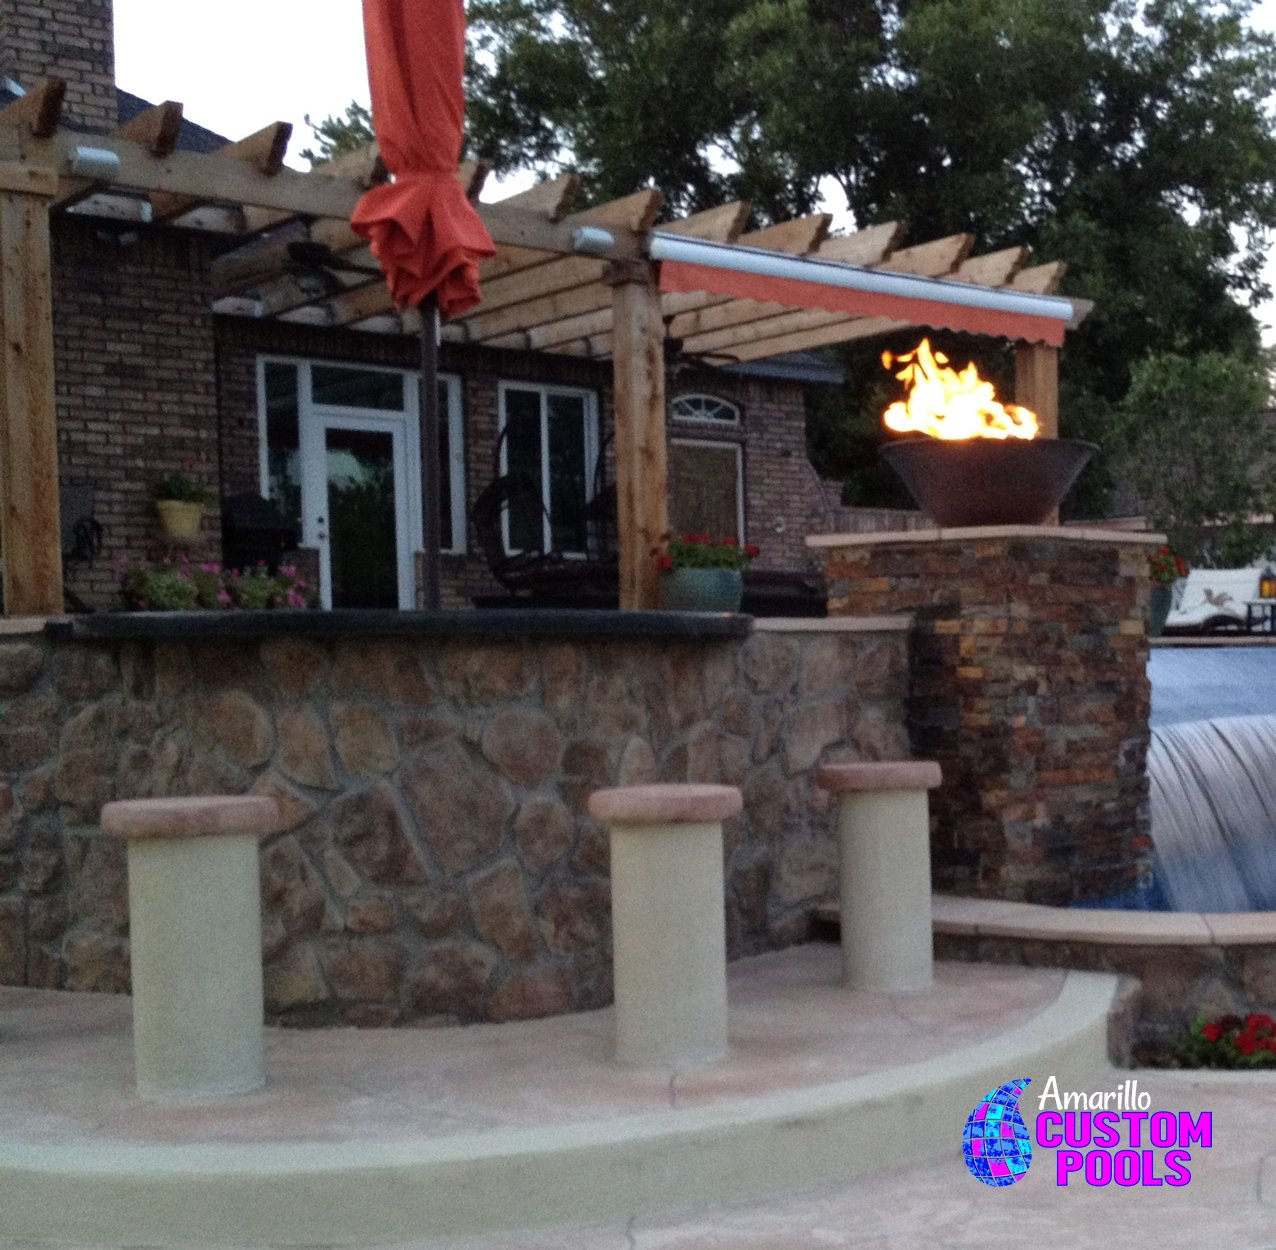 Amazing Outdoor Kitchens That You Might Have While Living: Outdoor Living Outdoor Kitchen Fireplaces Fire Pits Arbors